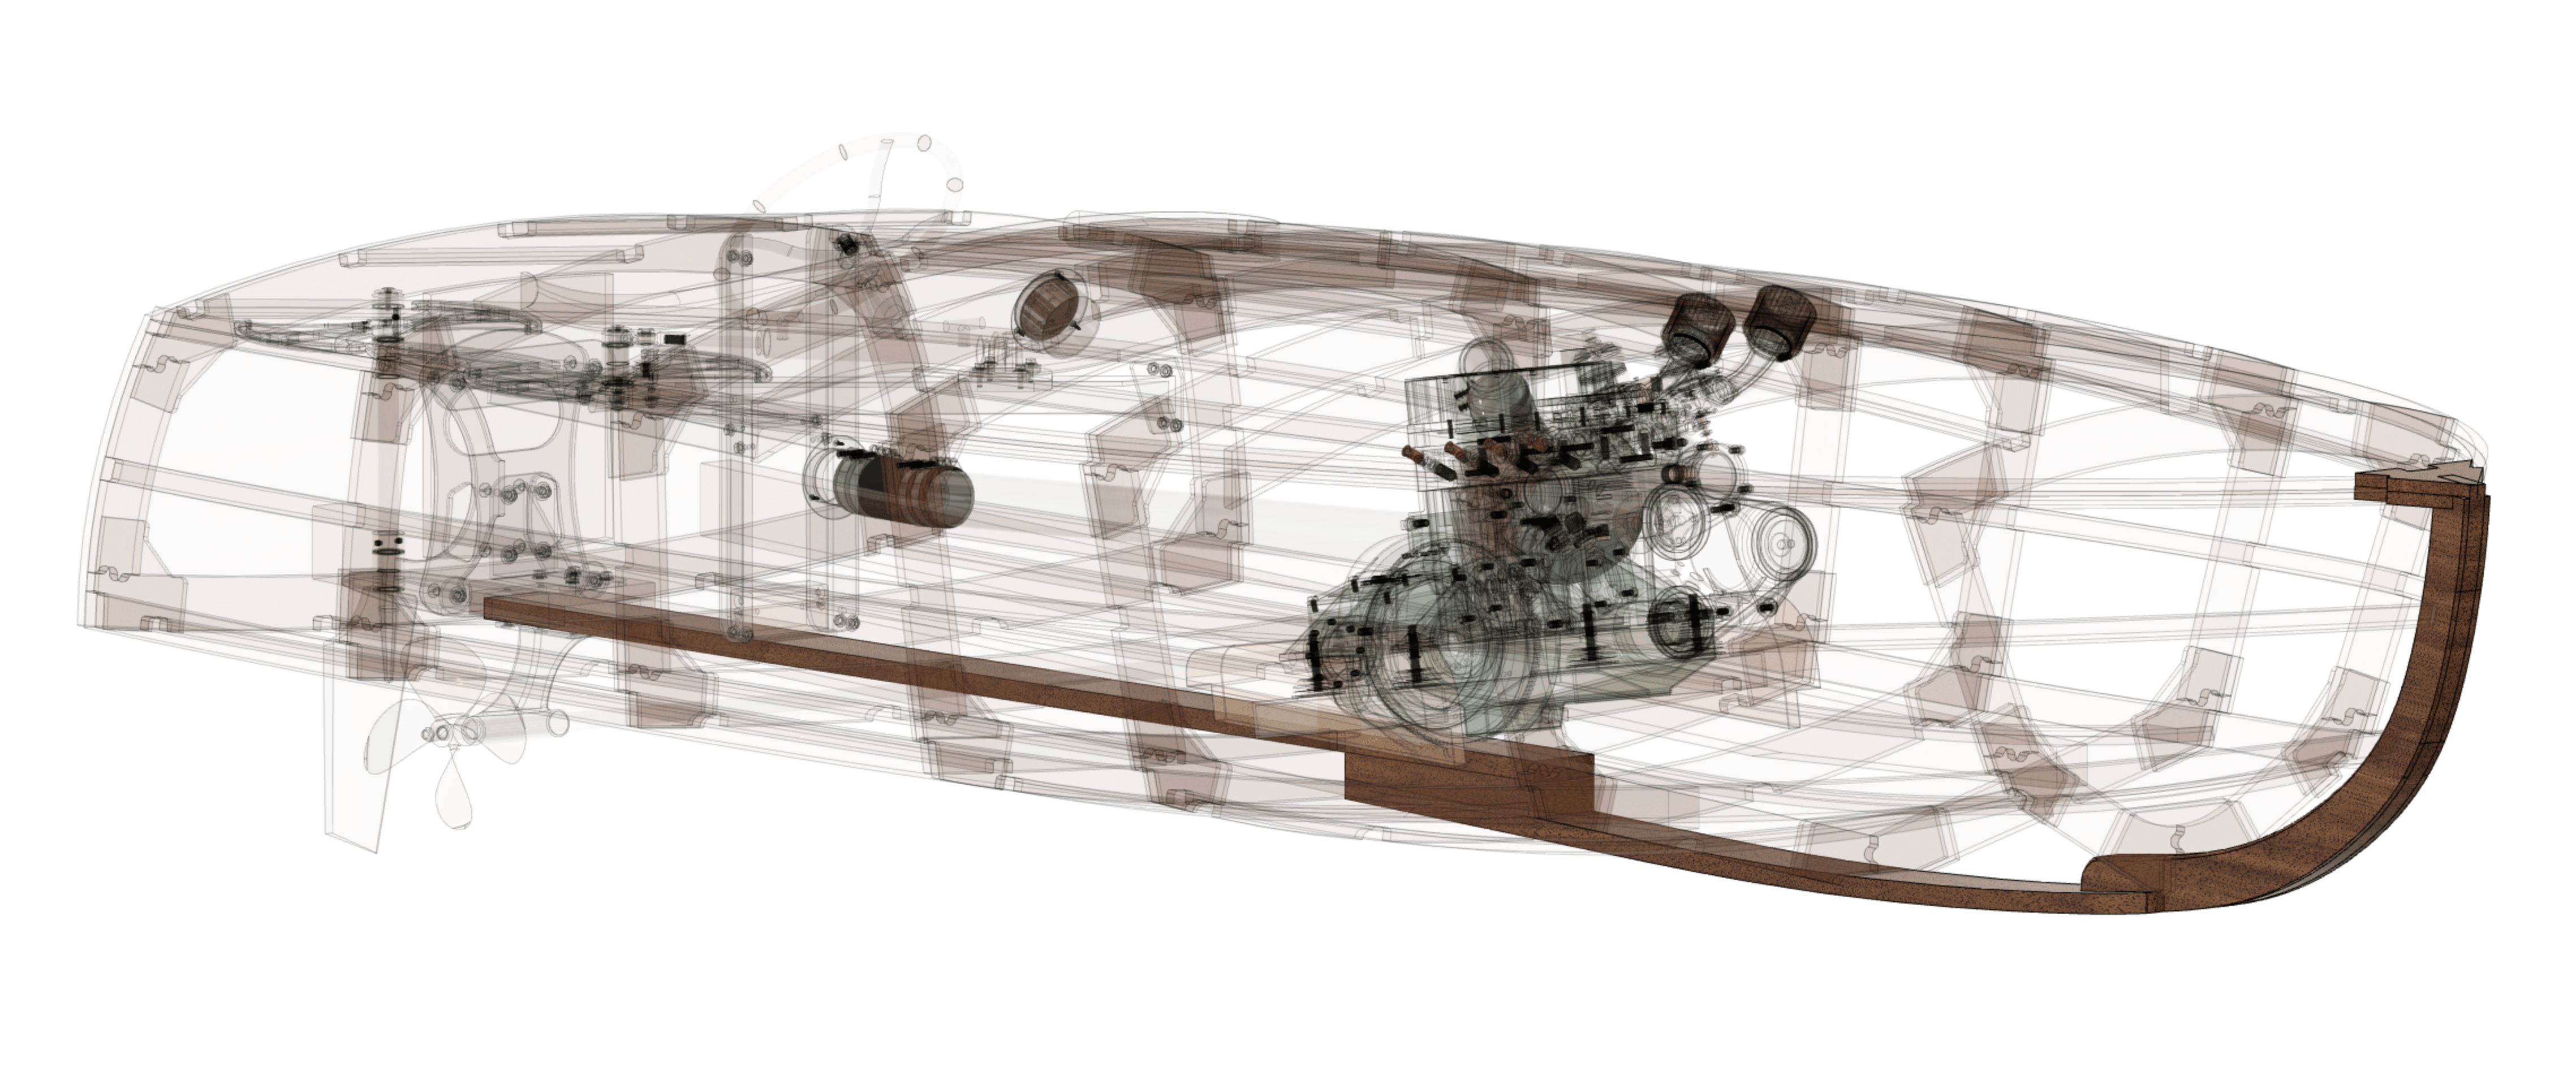 Marine design CAD drawing 3D drawing of boats